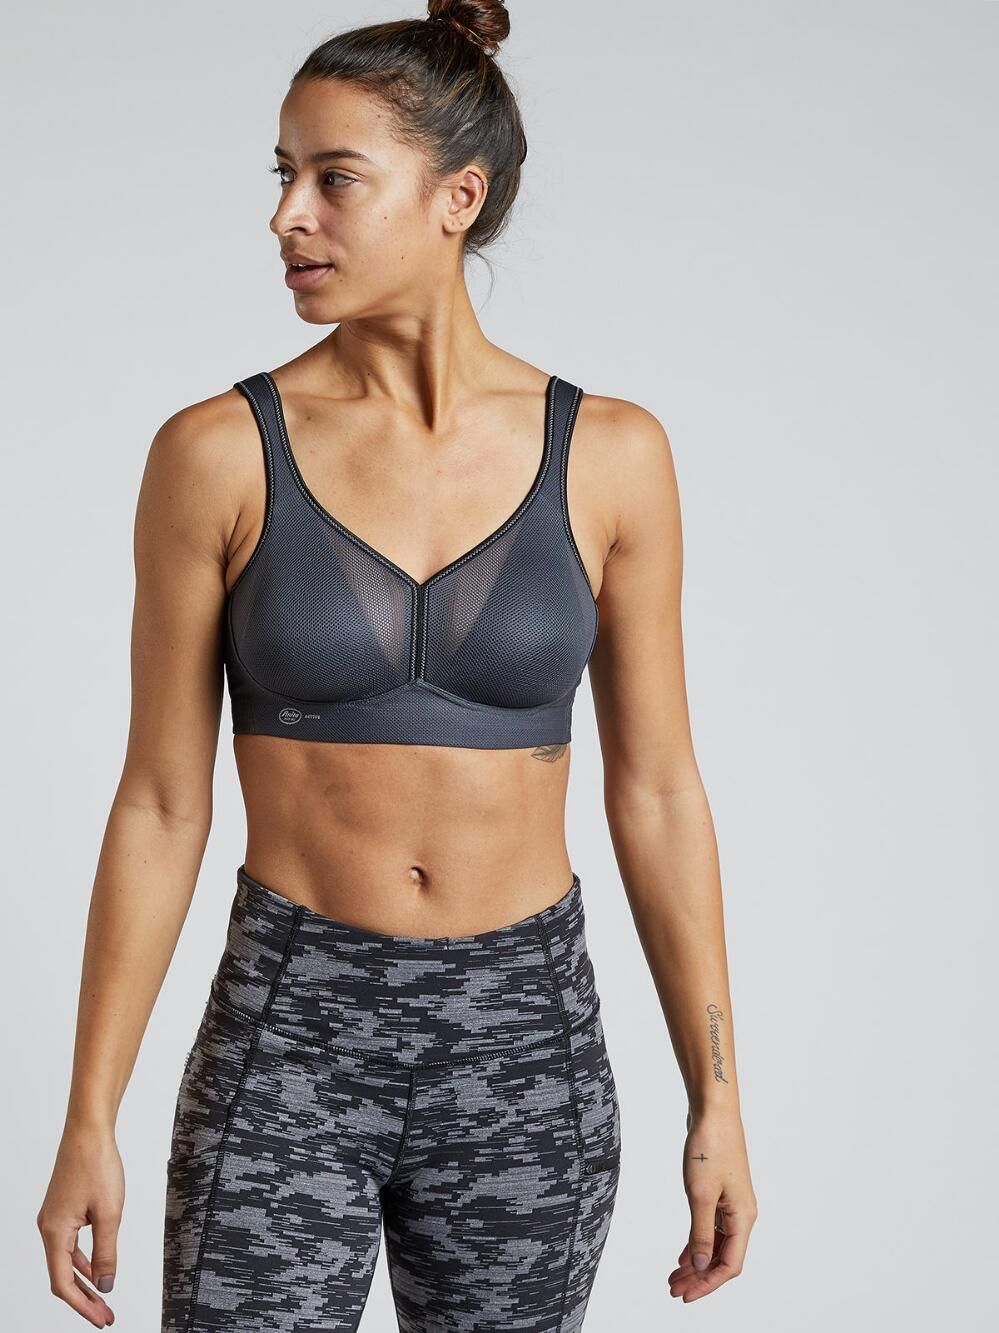 Women's Running Gear 2019 | Essentials for Female Runners